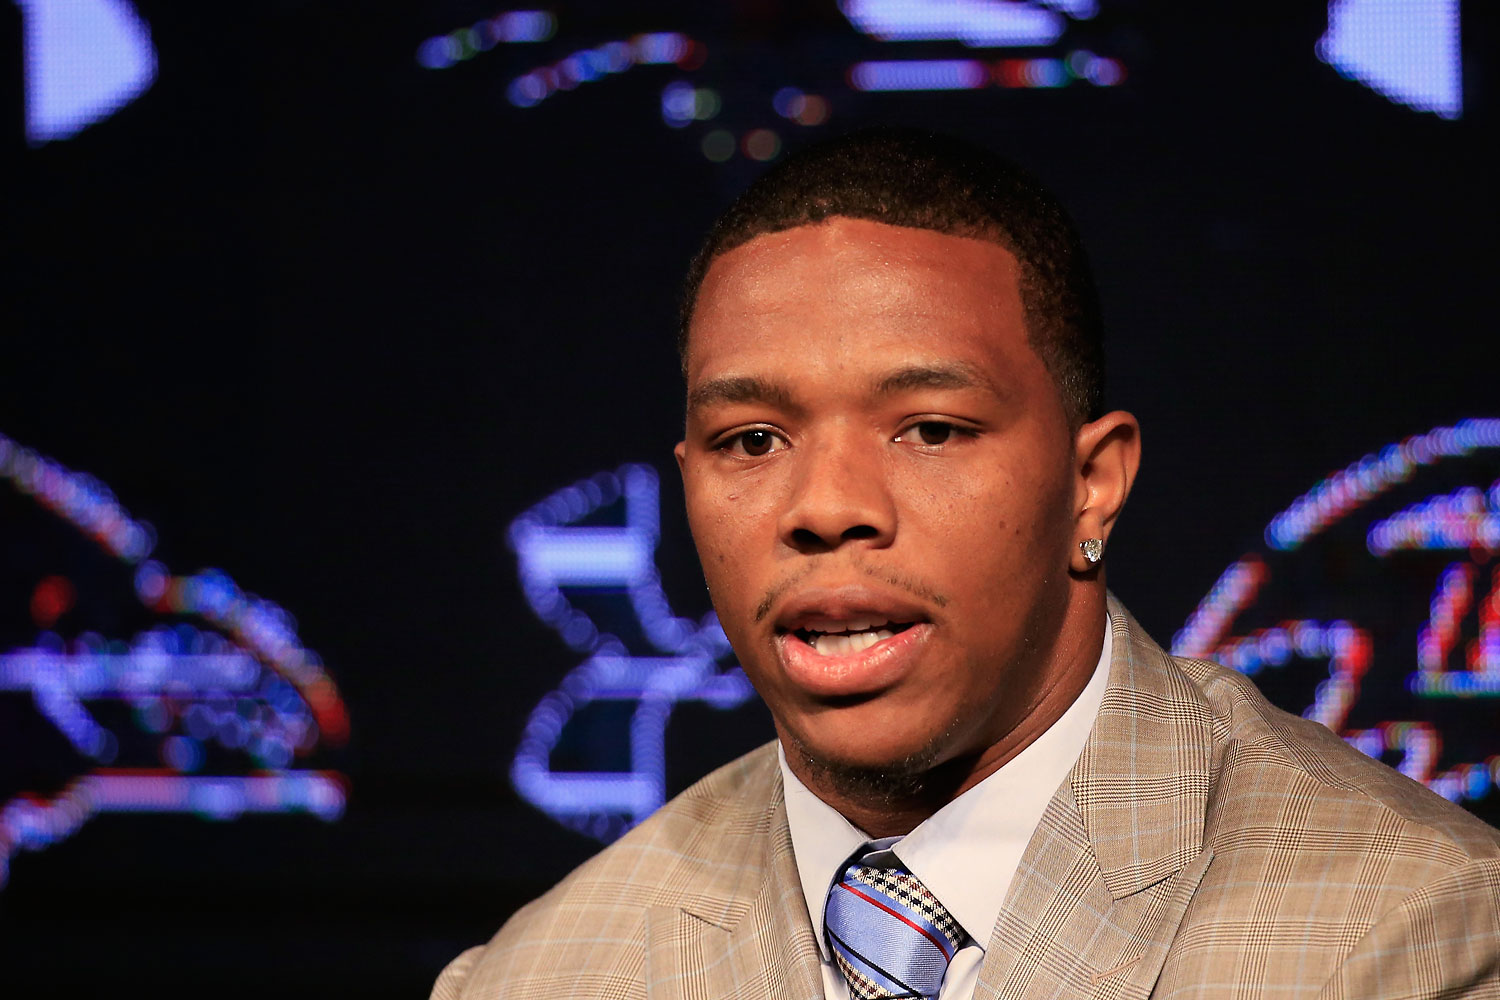 Running back Ray Rice of the Baltimore Ravens addresses a news conference with his wife Janay (not pictured) at the Ravens training center on May 23, 2014 in Owings Mills, Maryland.